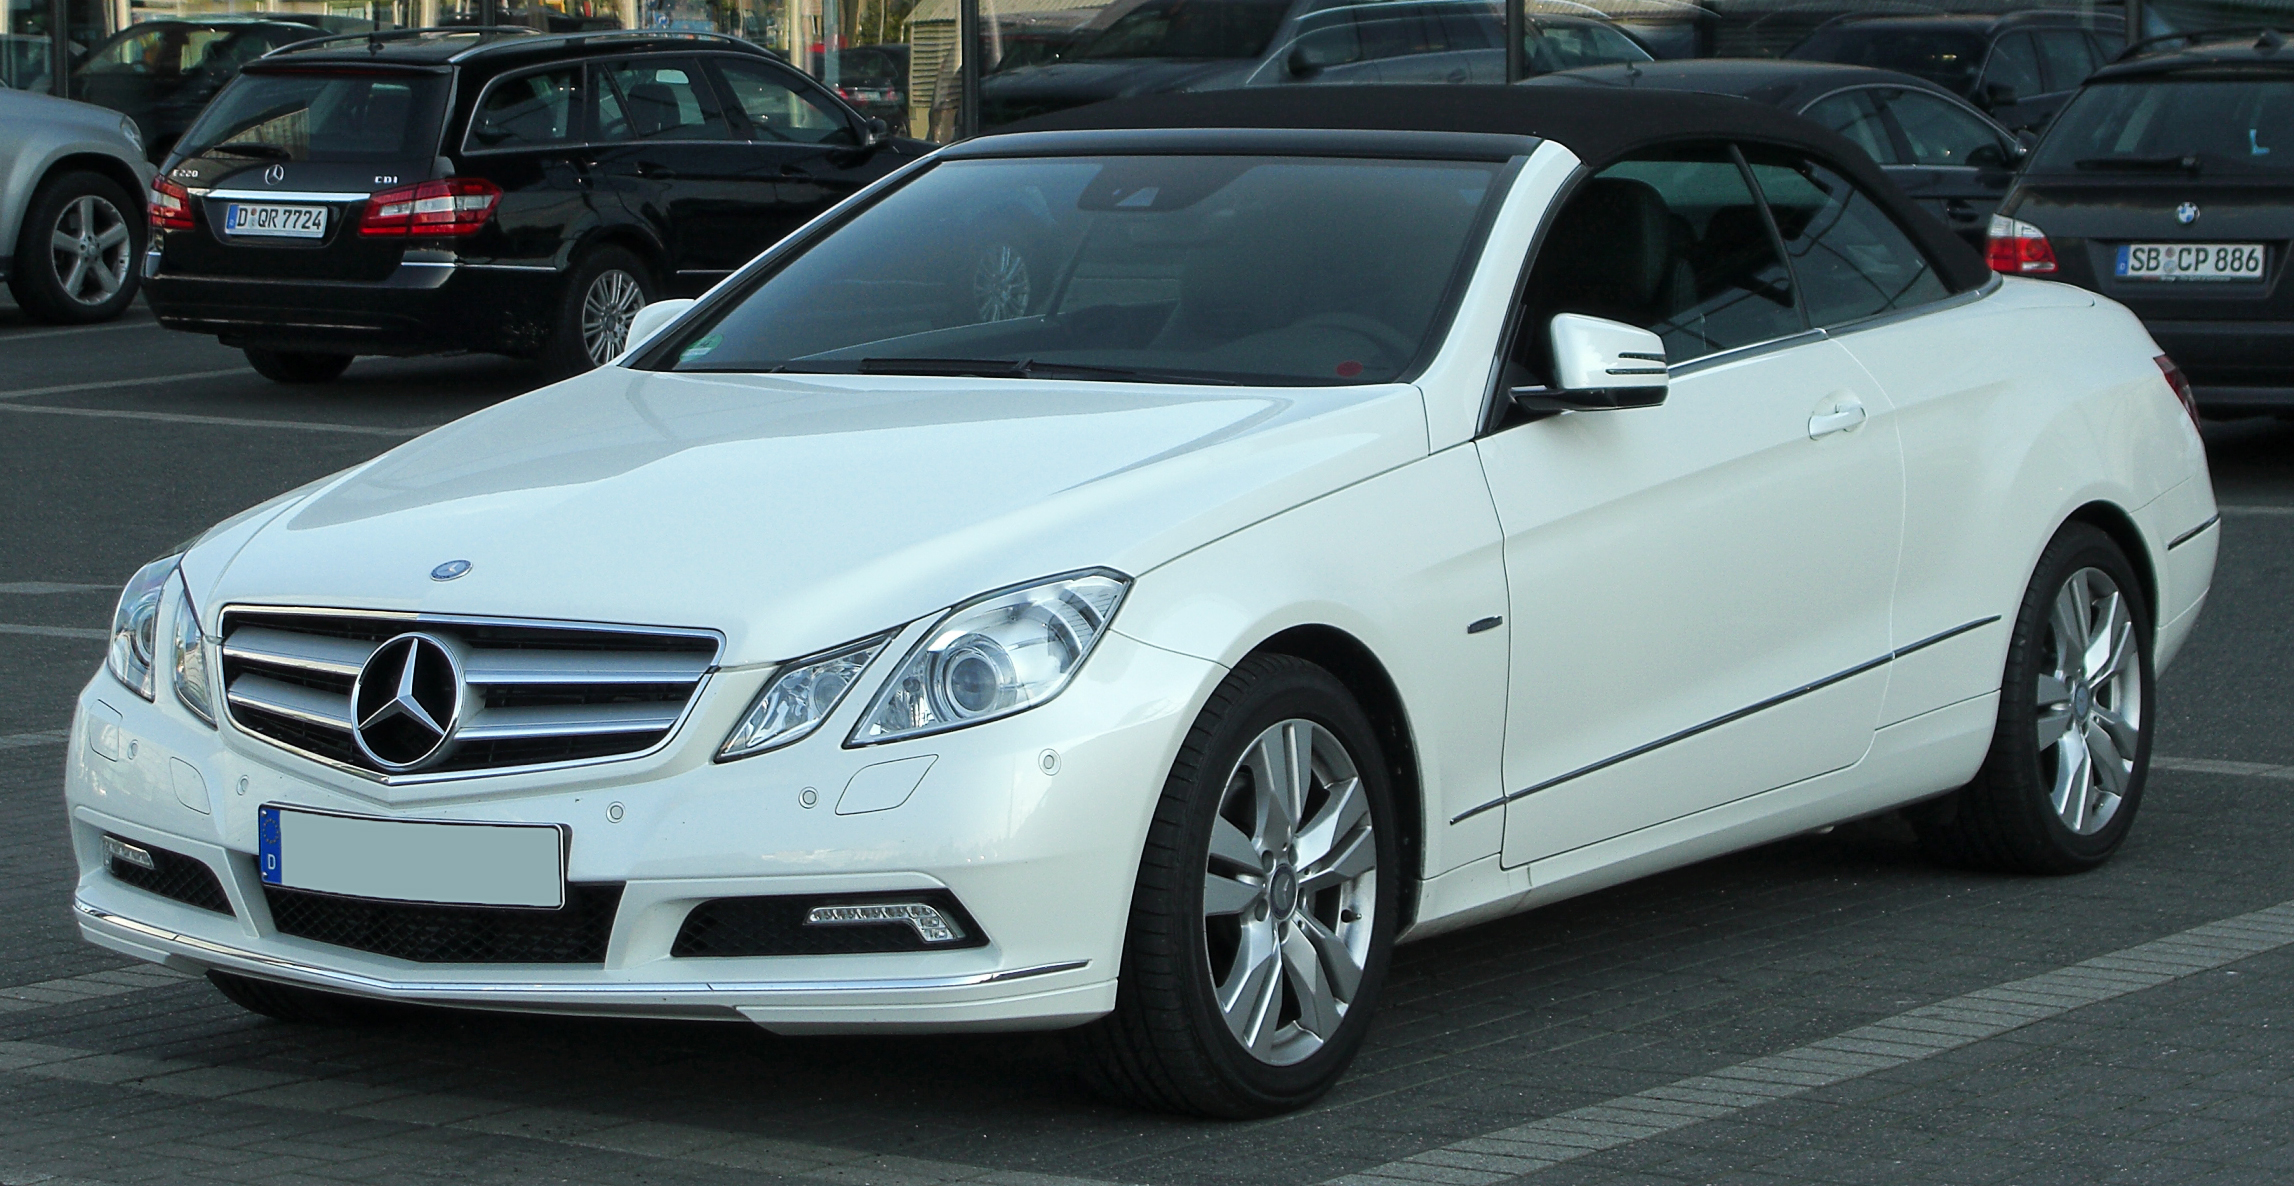 file mercedes e 350 cdi blueefficiency cabriolet a207 front wikimedia commons. Black Bedroom Furniture Sets. Home Design Ideas